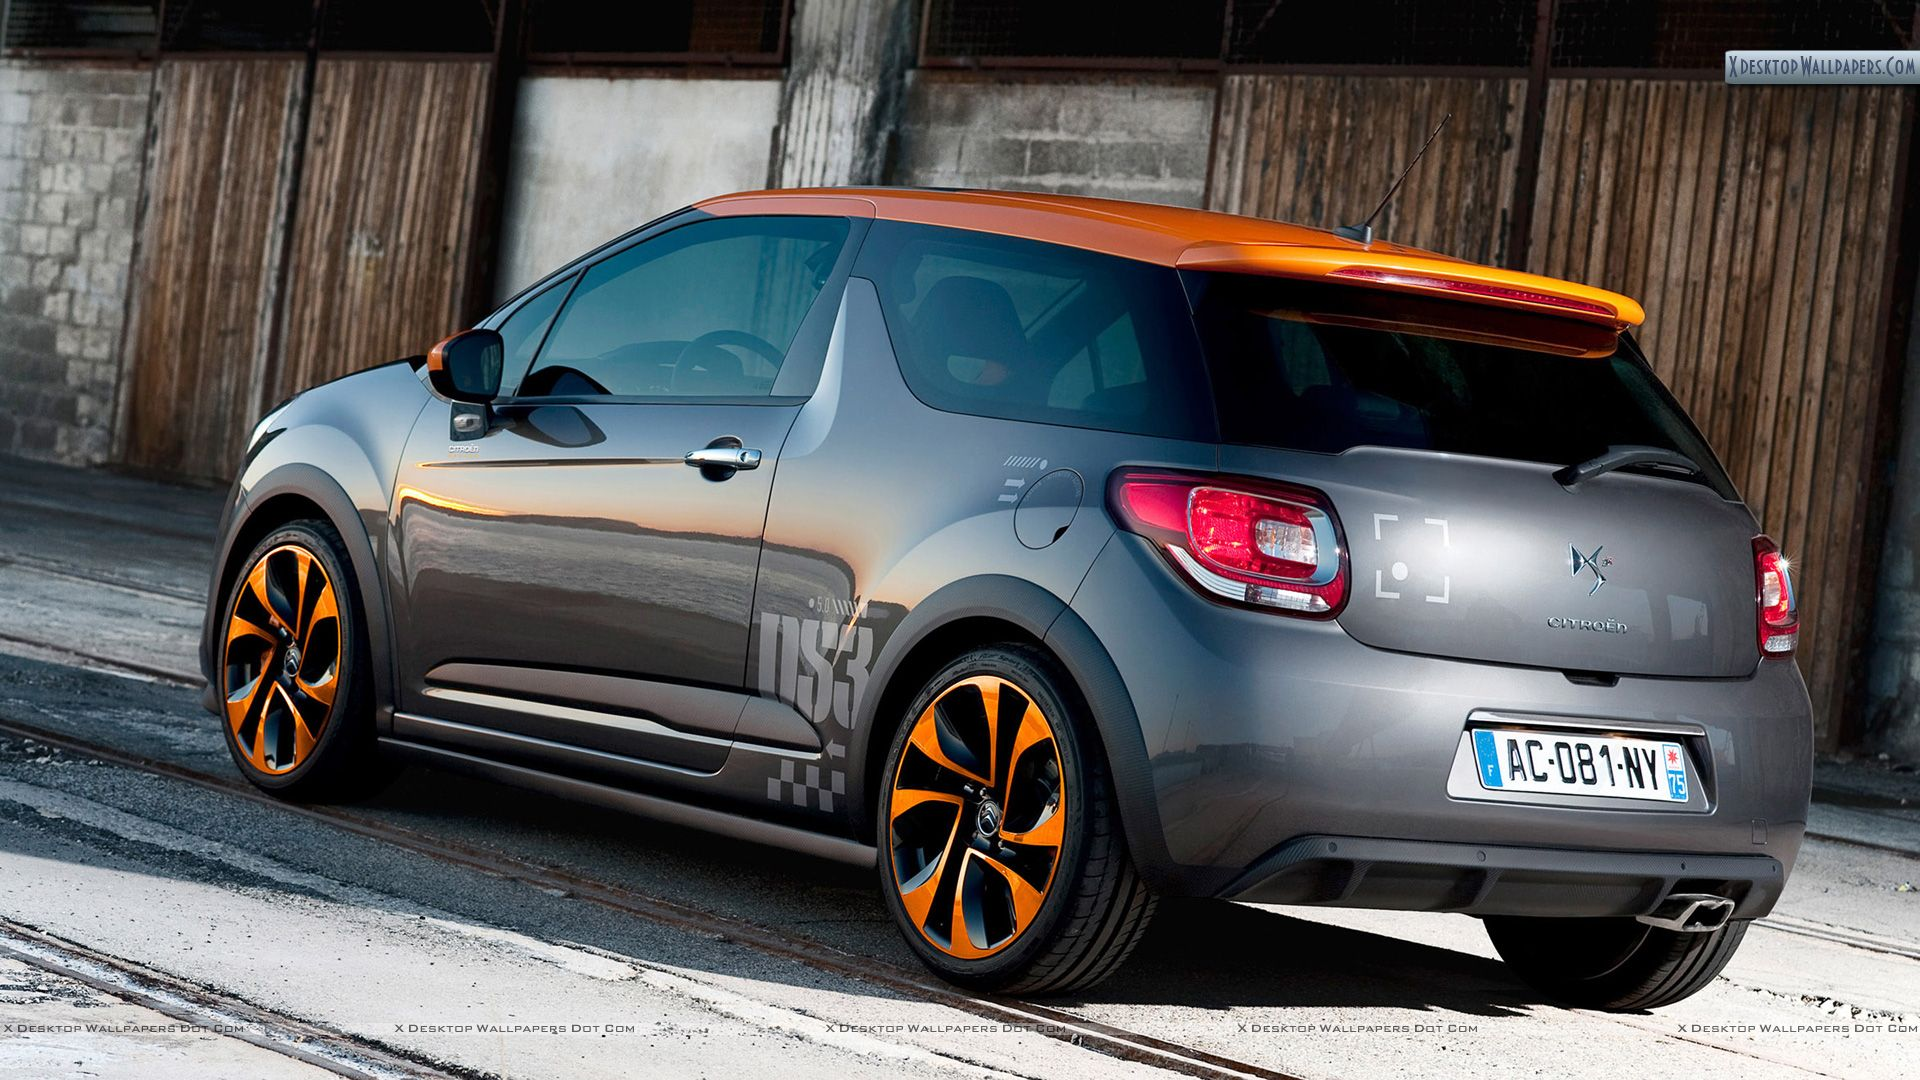 Citroen DS3 Wallpapers, Photos & Images in HD